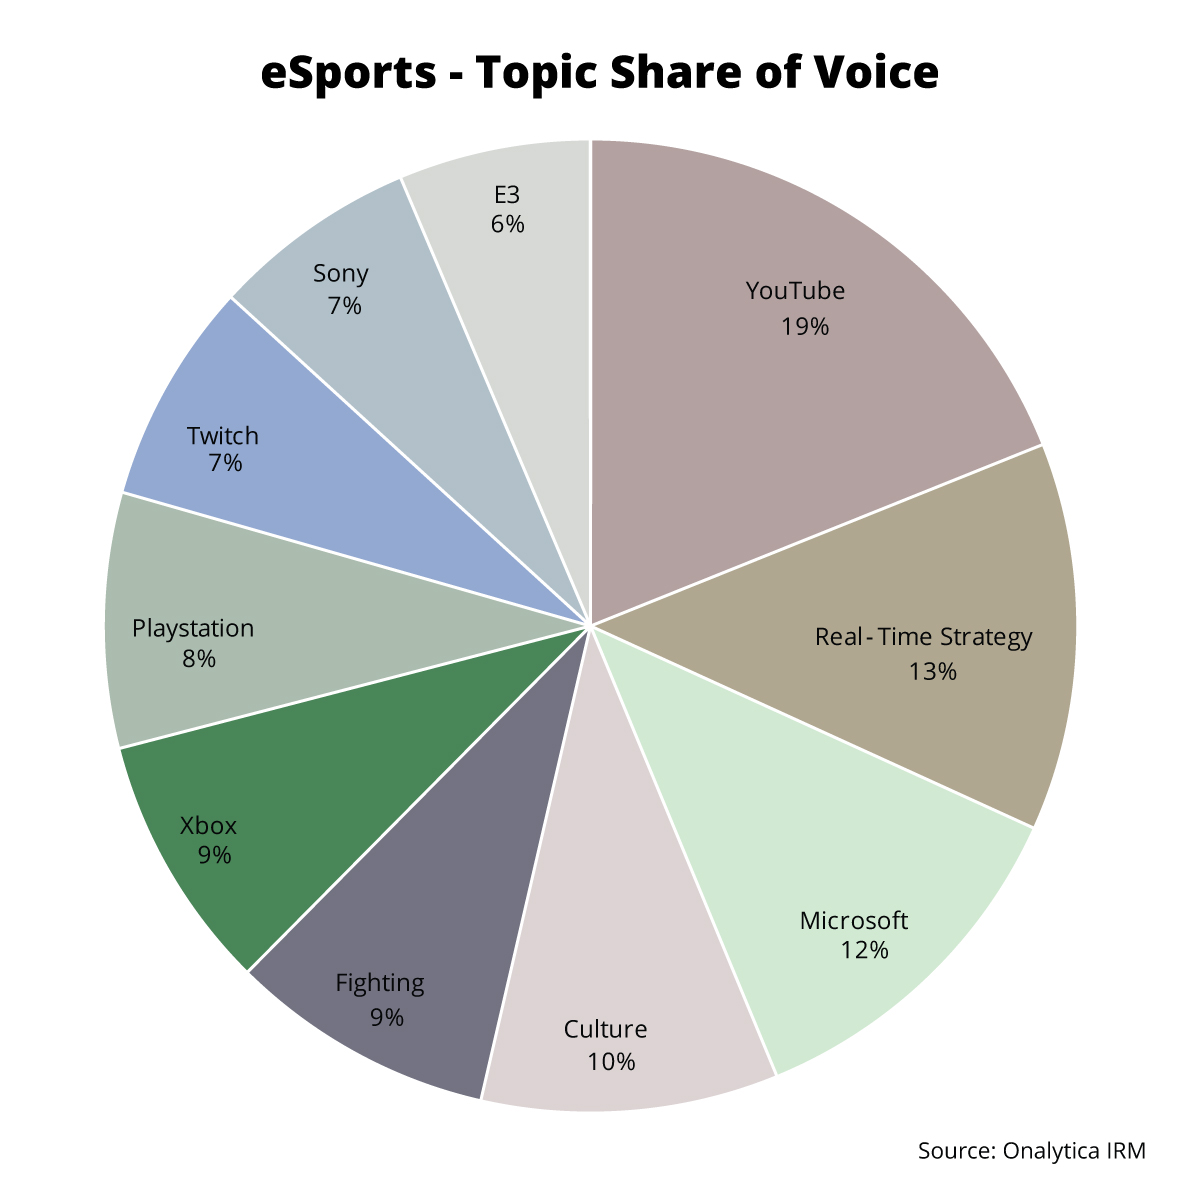 Onalytica - eSports: Top 100 Influencers and Brands - Topic Share of Voice